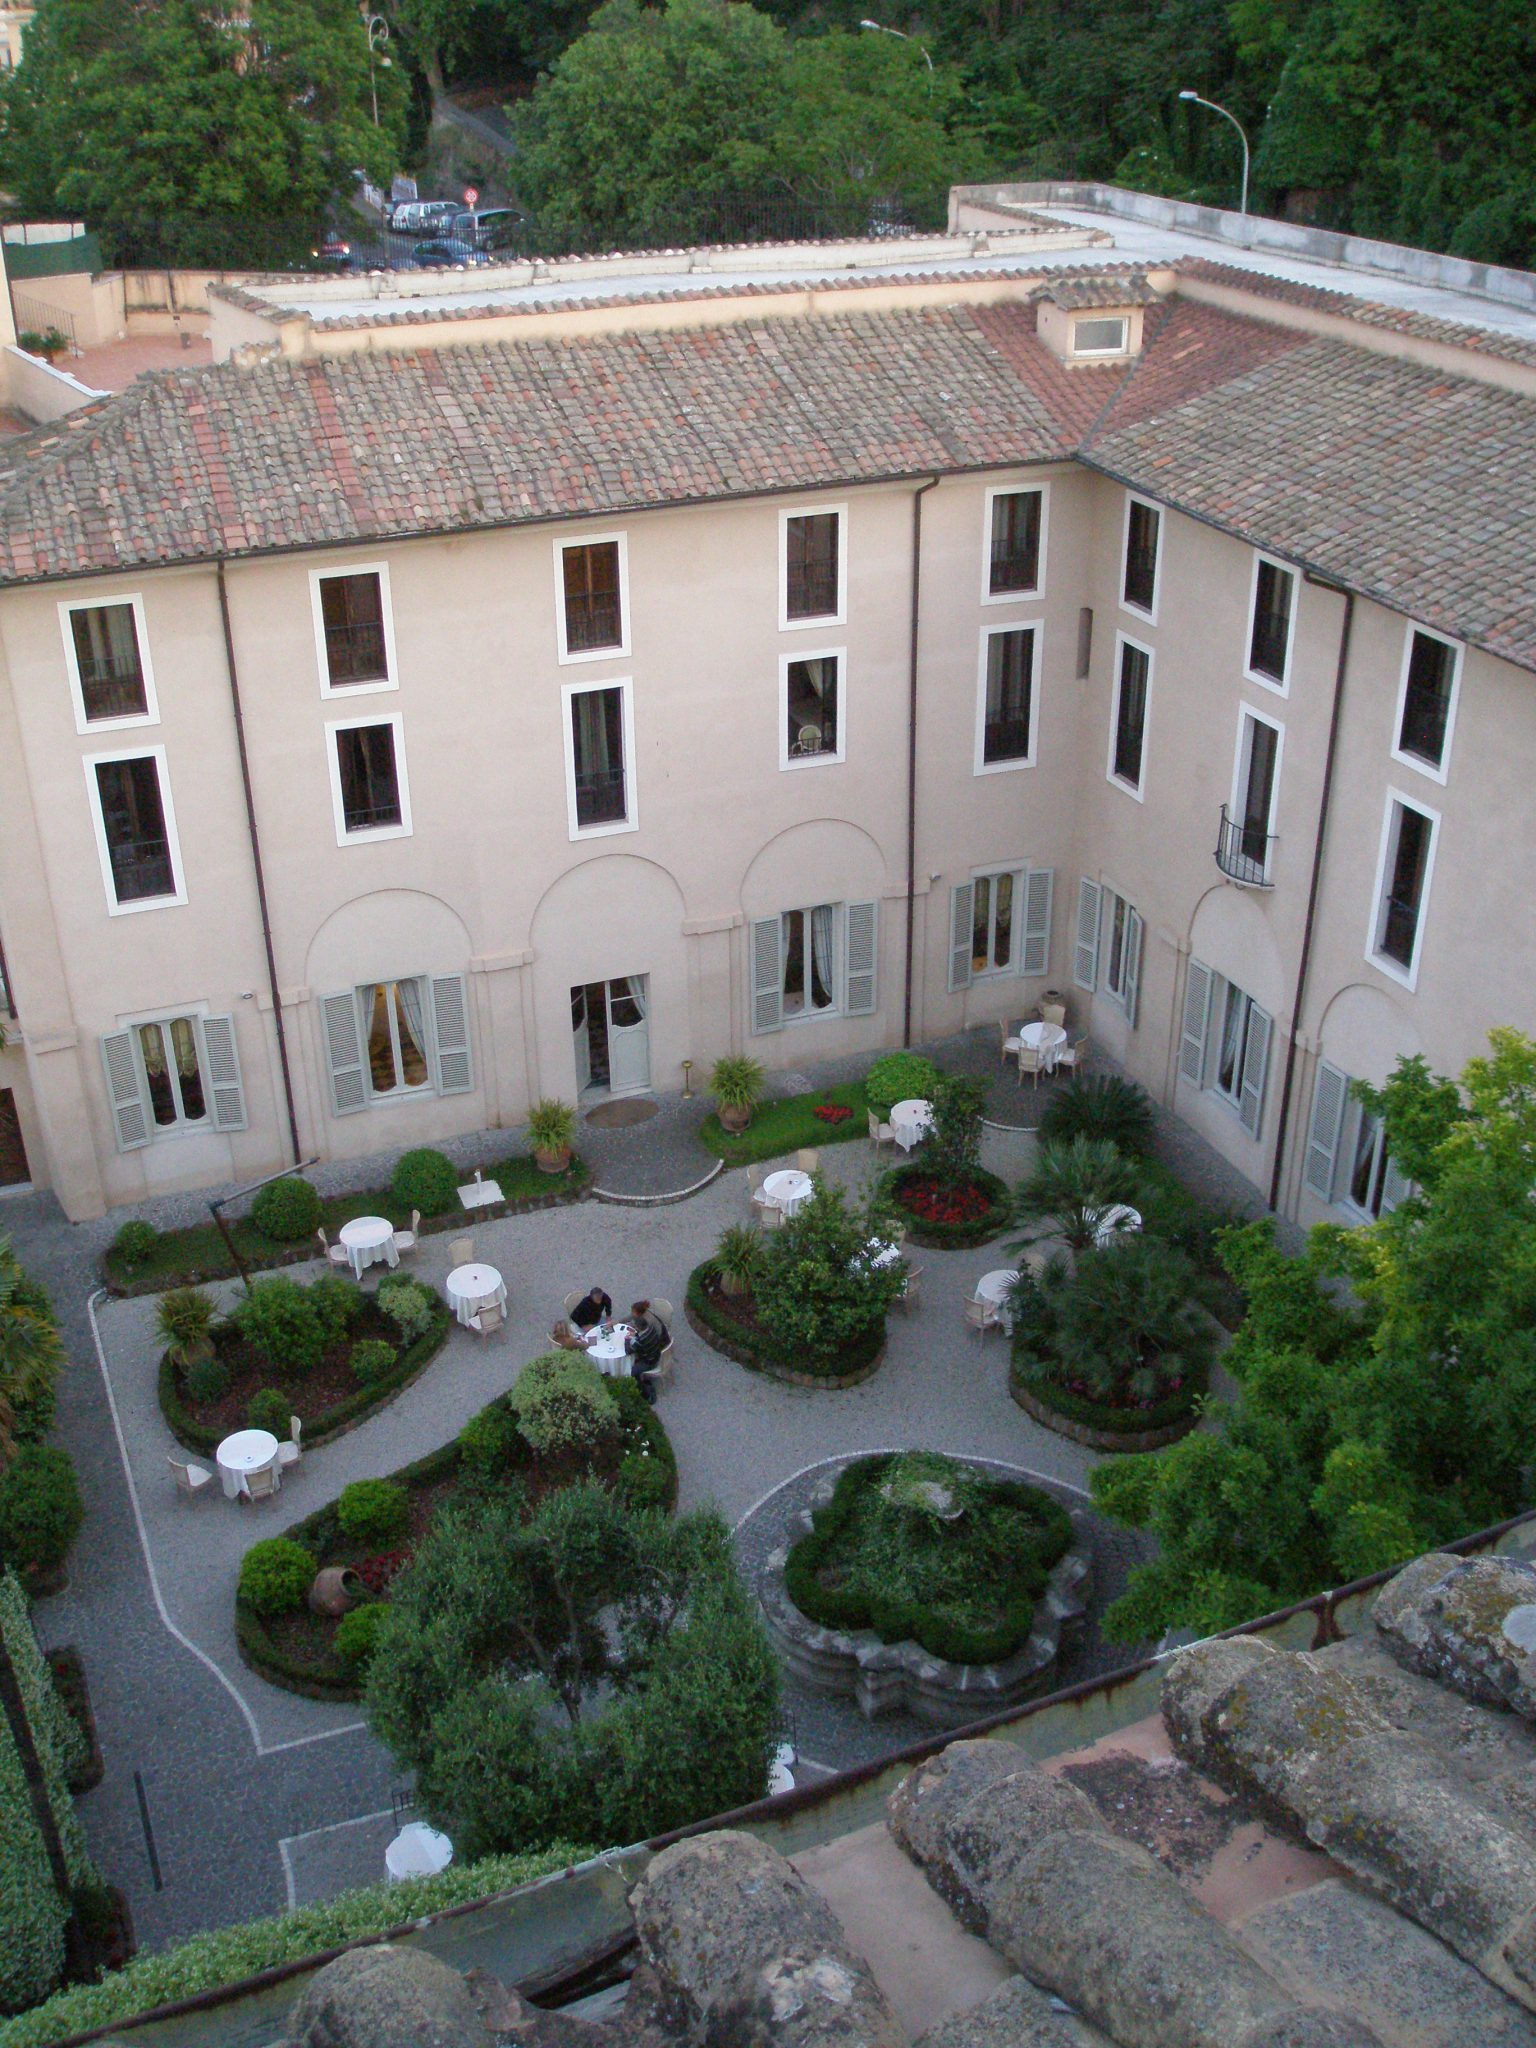 The Donna Camilla Savelli Hotel. This is my twilight view of the courtyard, as seen from the Hotel's roof terrace, which is built atop Borromini's Church of Santa Maria dei Sette Dolori. The window to my too is on the top floor of the former Convent, & just to the right of the corner where two wings of the building meet. Photo taken on Friday, May 9, 2014.